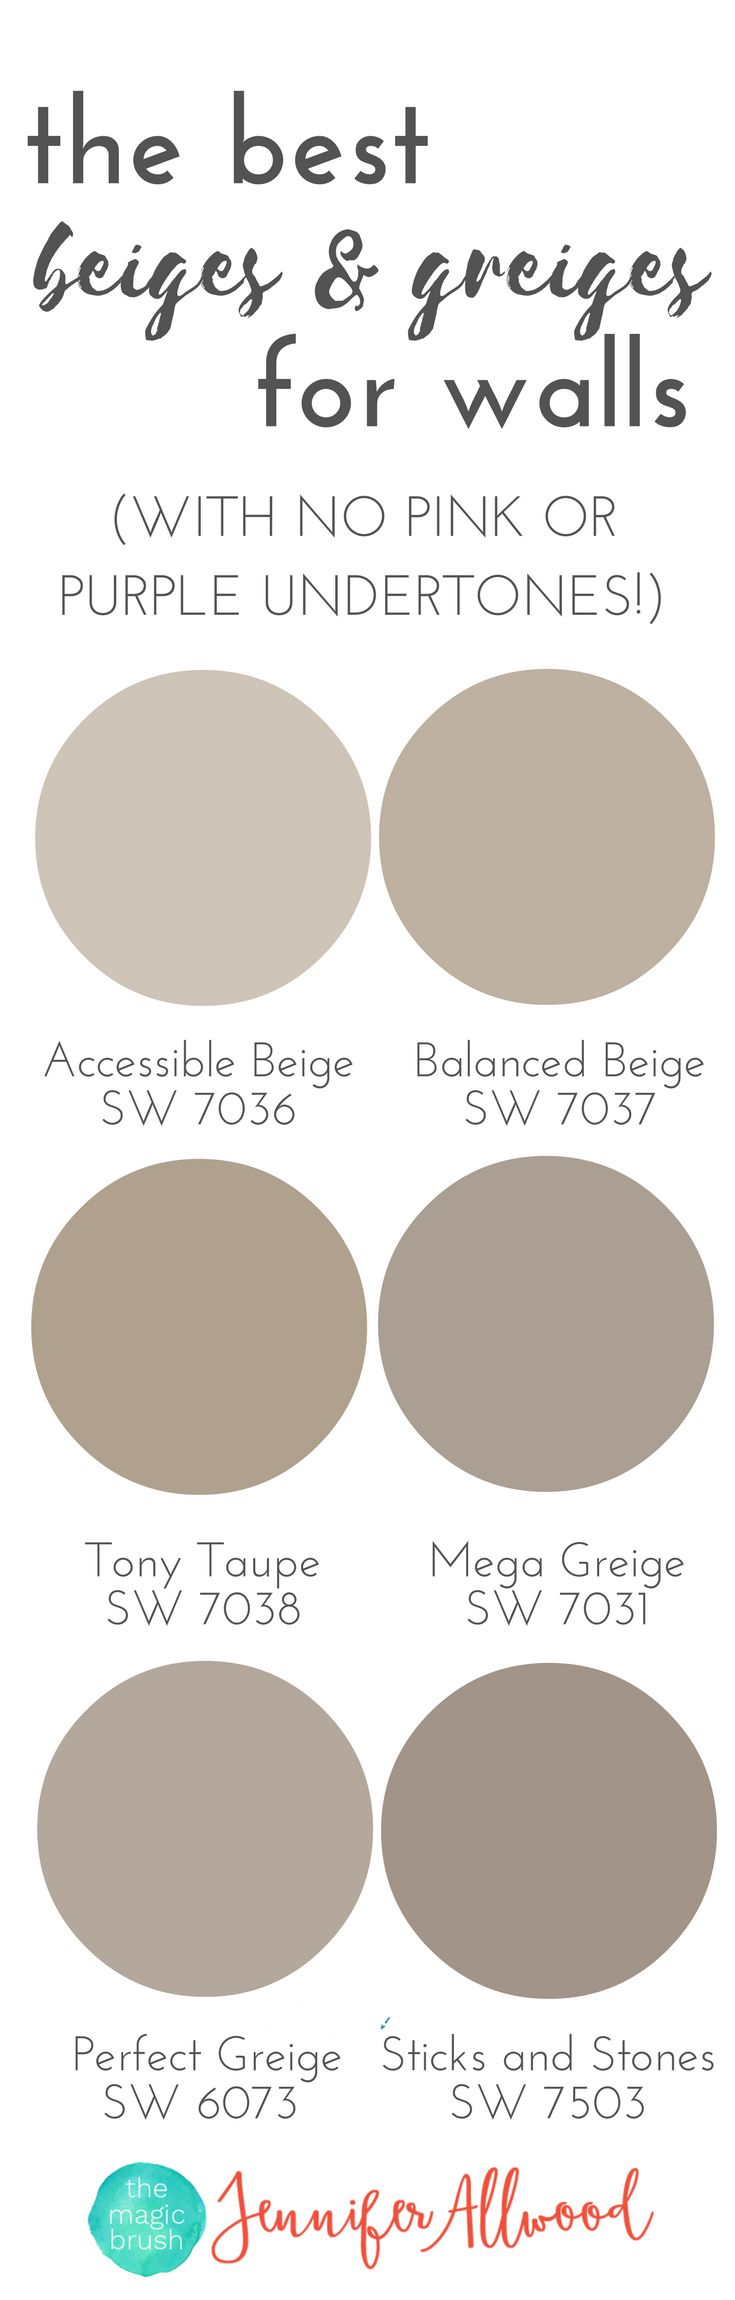 25 best ideas about balanced beige on pinterest beige Best paint to use on walls